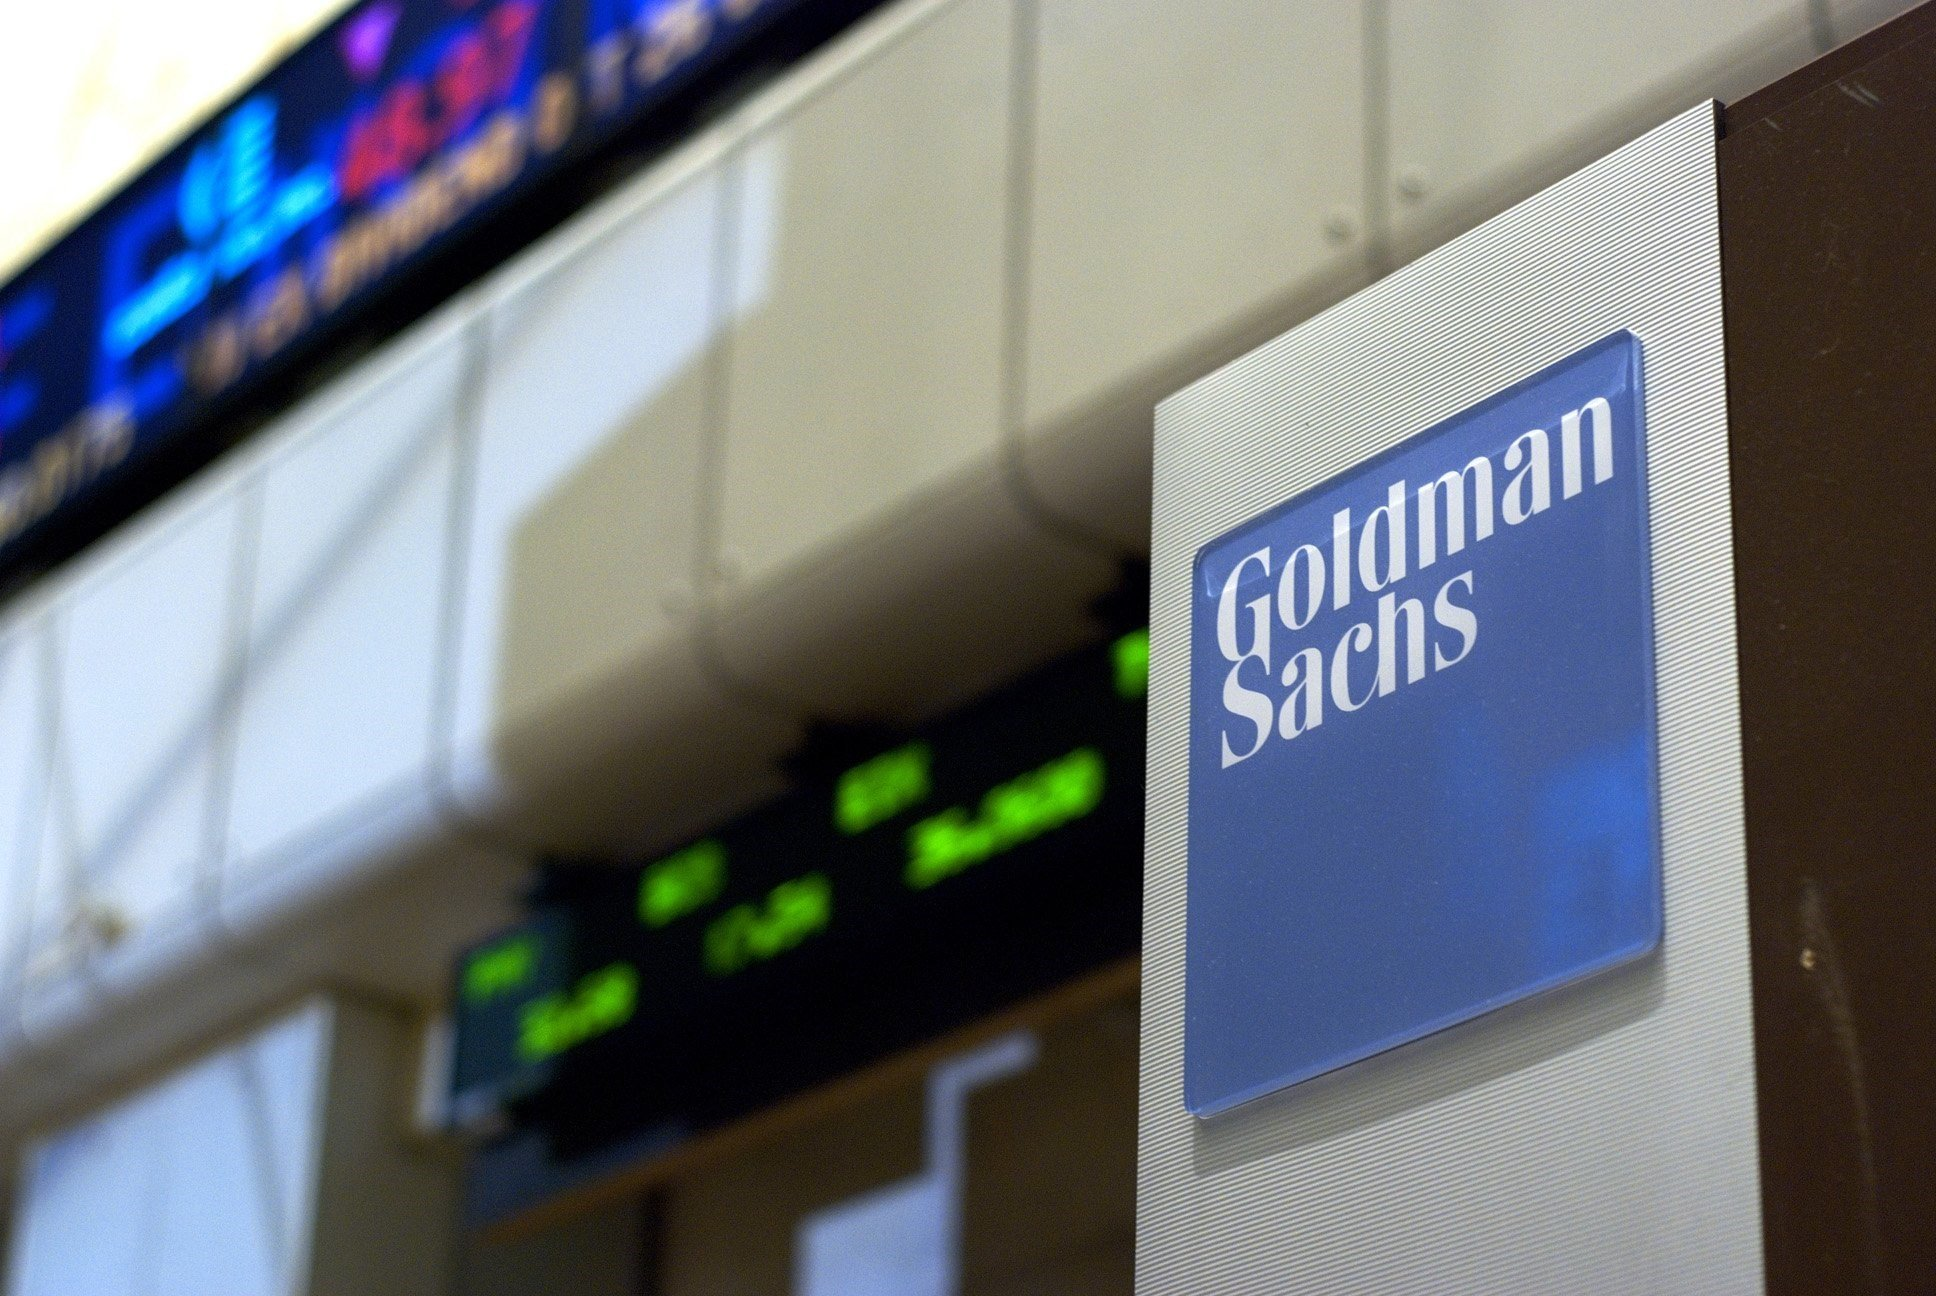 Goldman Sachs Group, Inc. (The) (GS) Stake Held by Cohen Klingenstein LLC